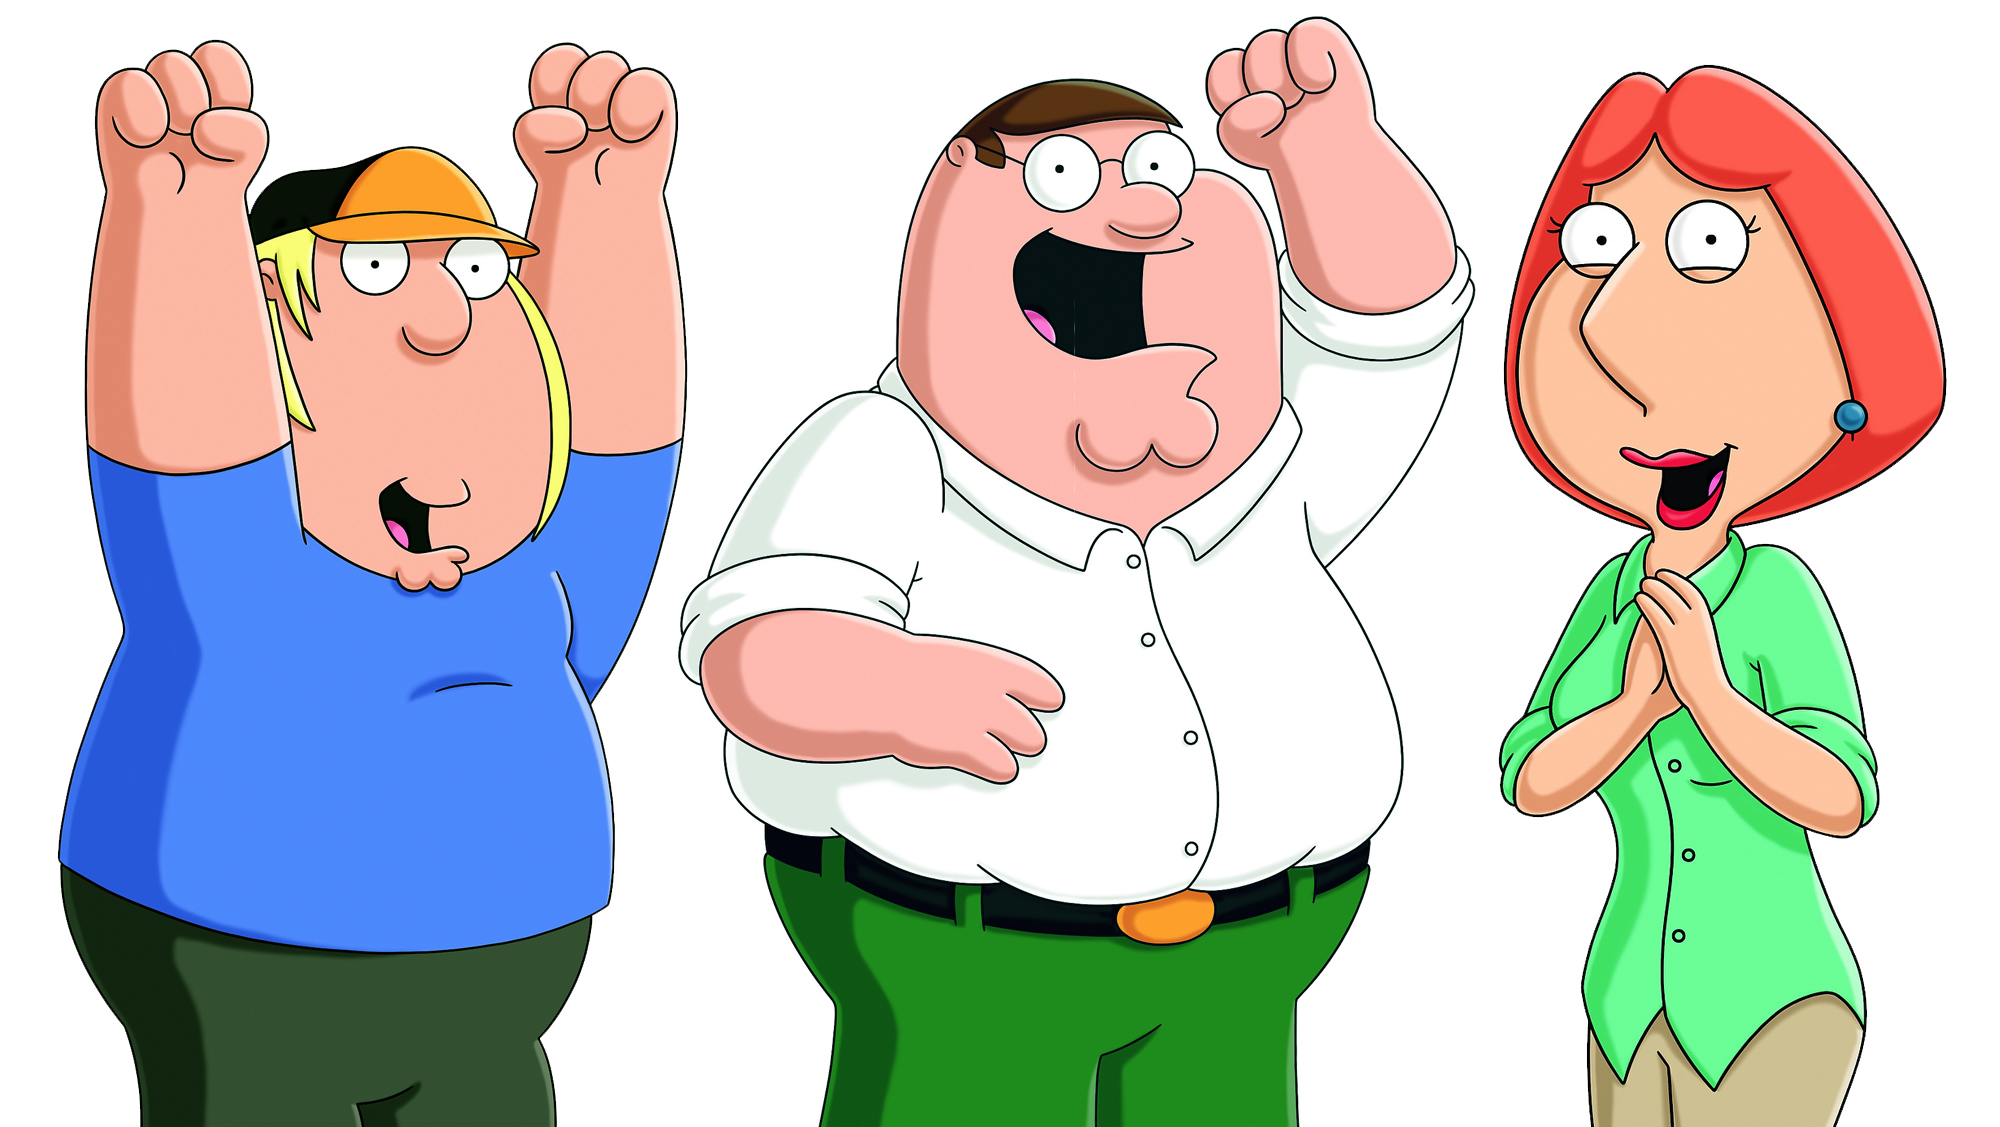 2000x1127 This Family Guy Face Morph Is Mesmerizing Af